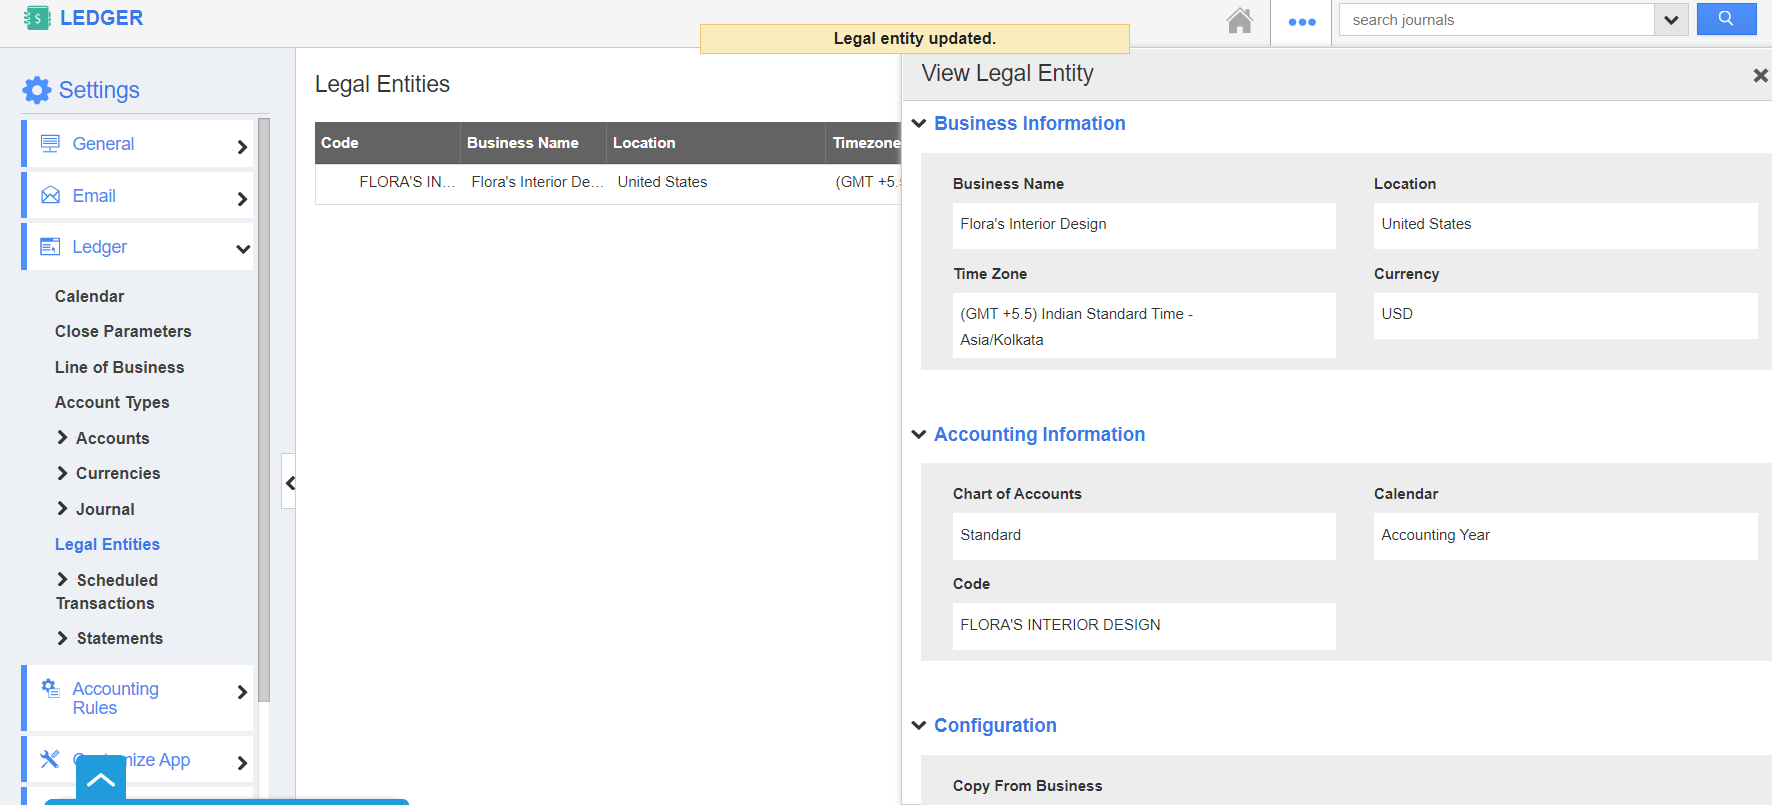 Legal Entity Updated